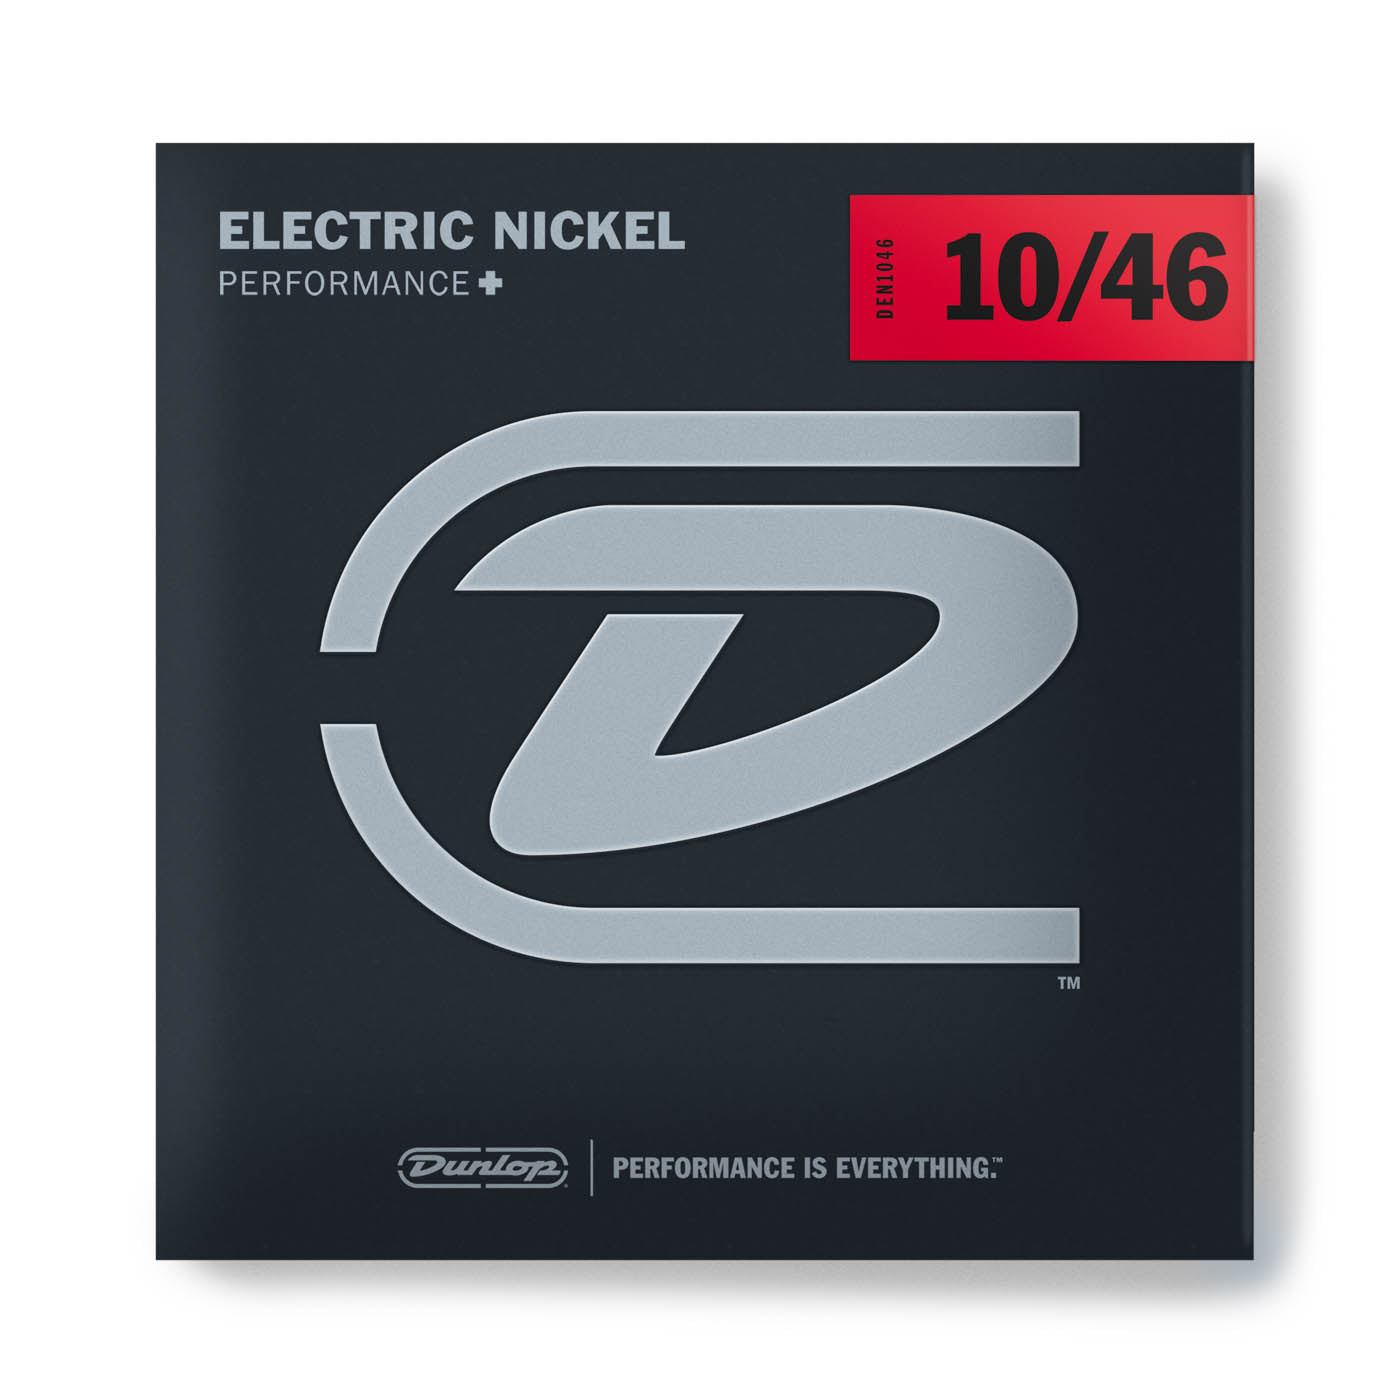 Dunlop Performance+ Nickel Wound Electric Guitar Strings - 10/46